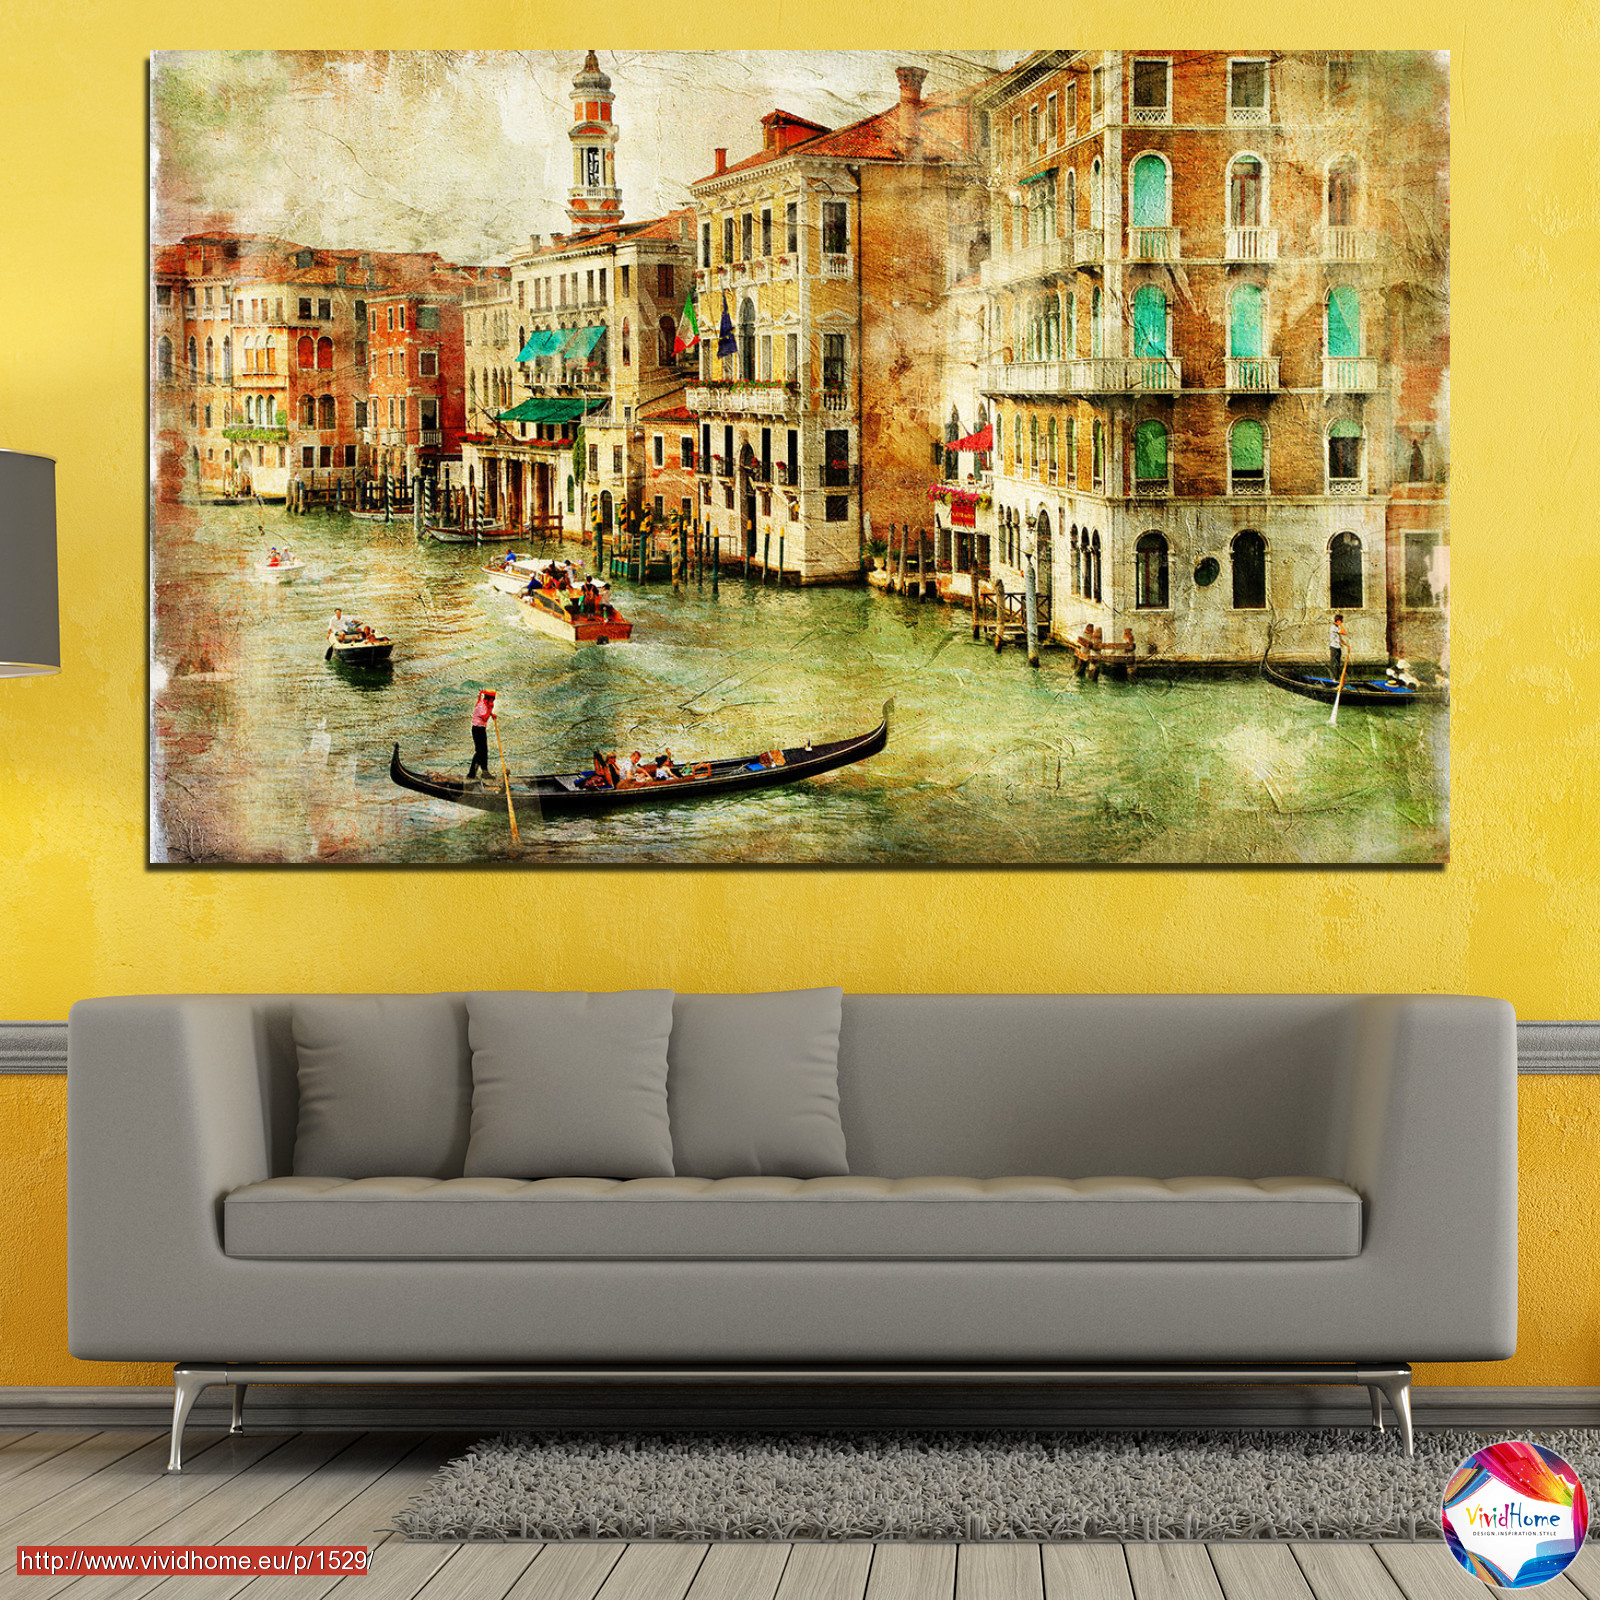 City, Venice, River, Architecture, Boat, Street, Houses №0782